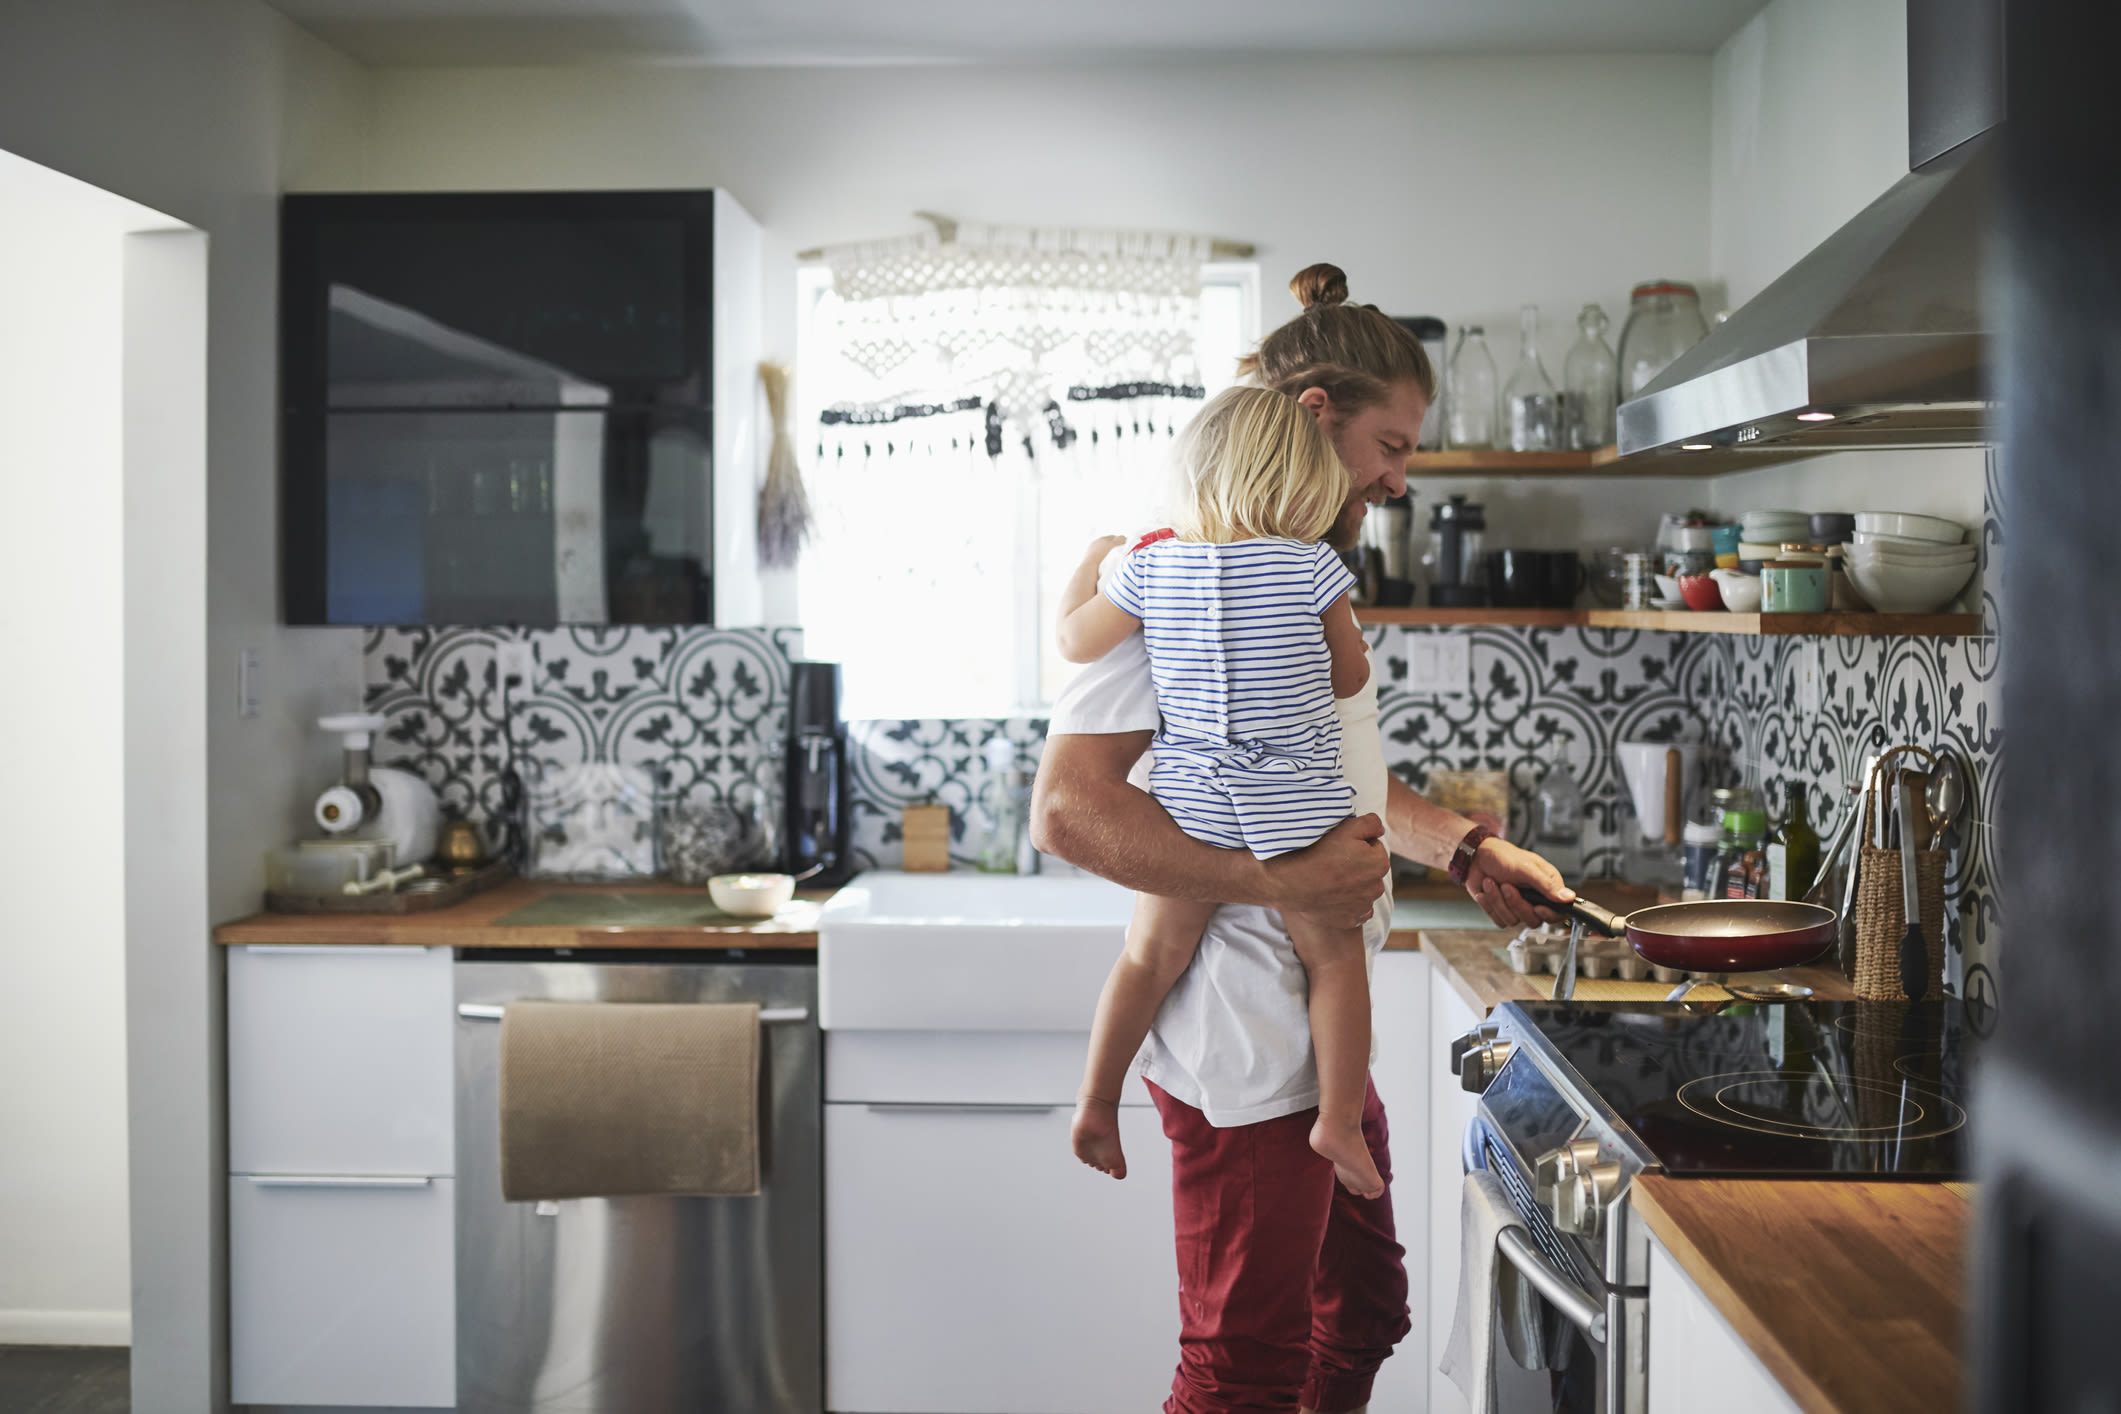 A man holding his daughter while cooking in the kitchen